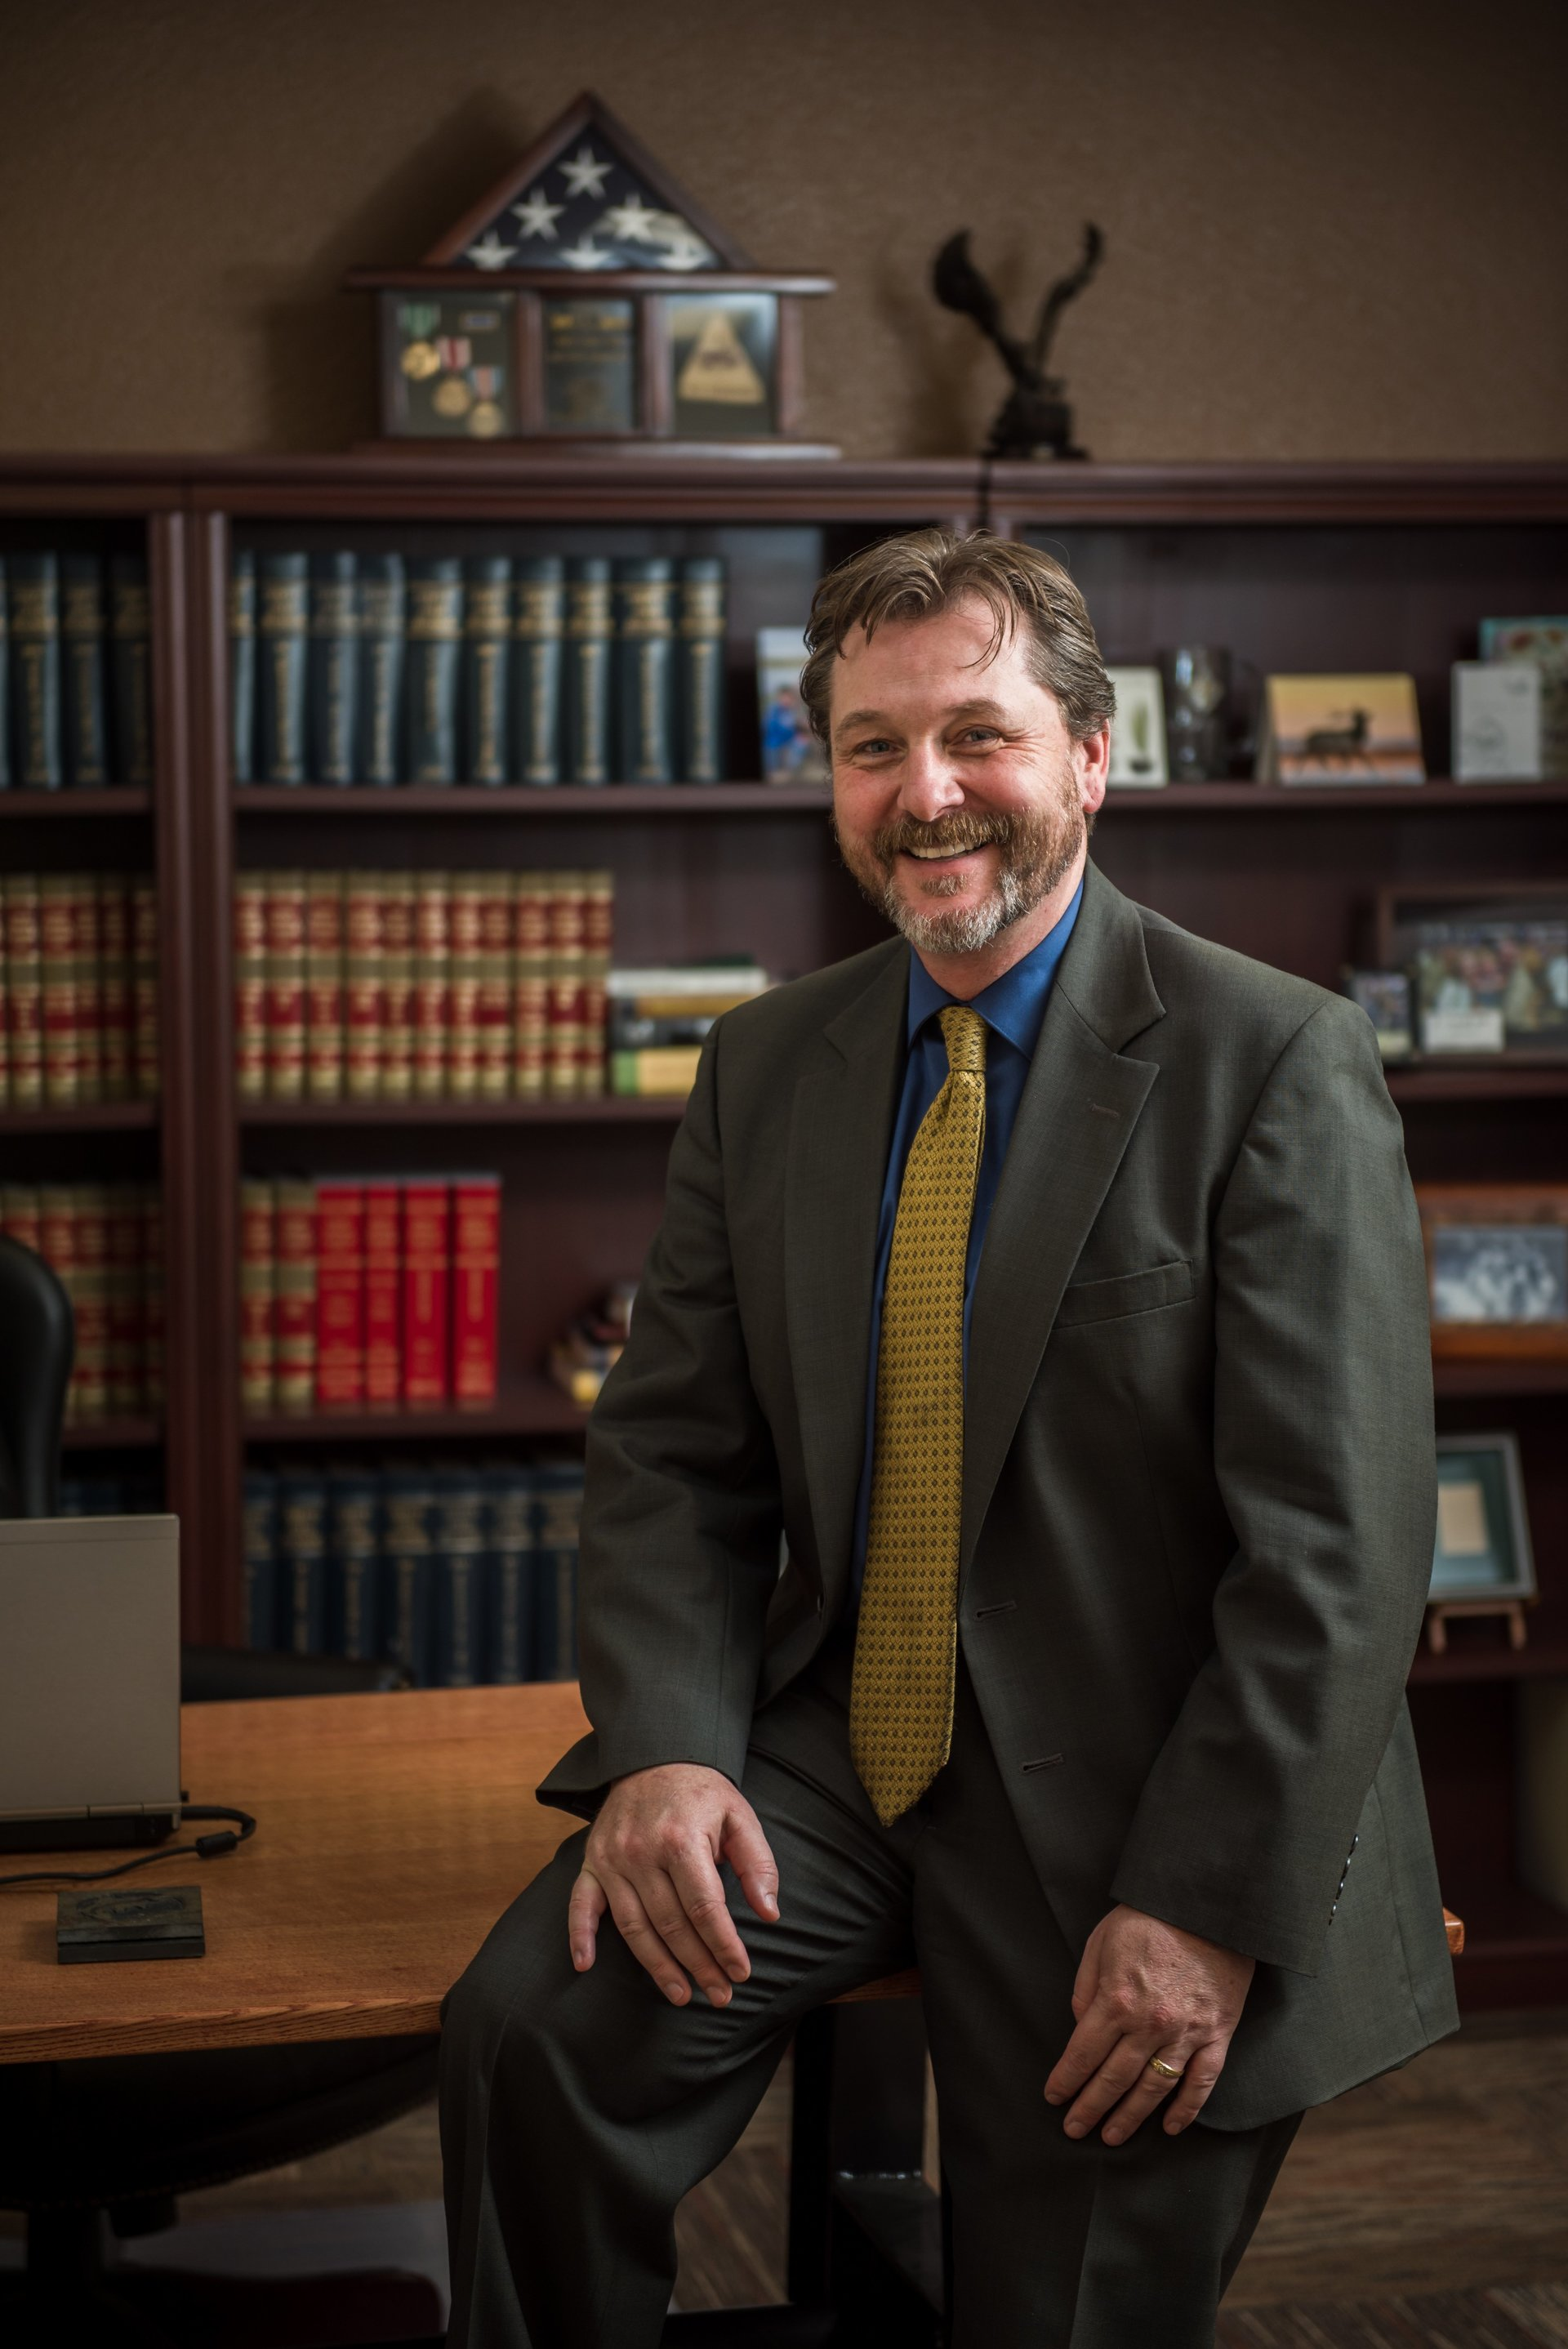 DUI Attorney Jim Sword - Meade County, SD - DUIAttorney.com